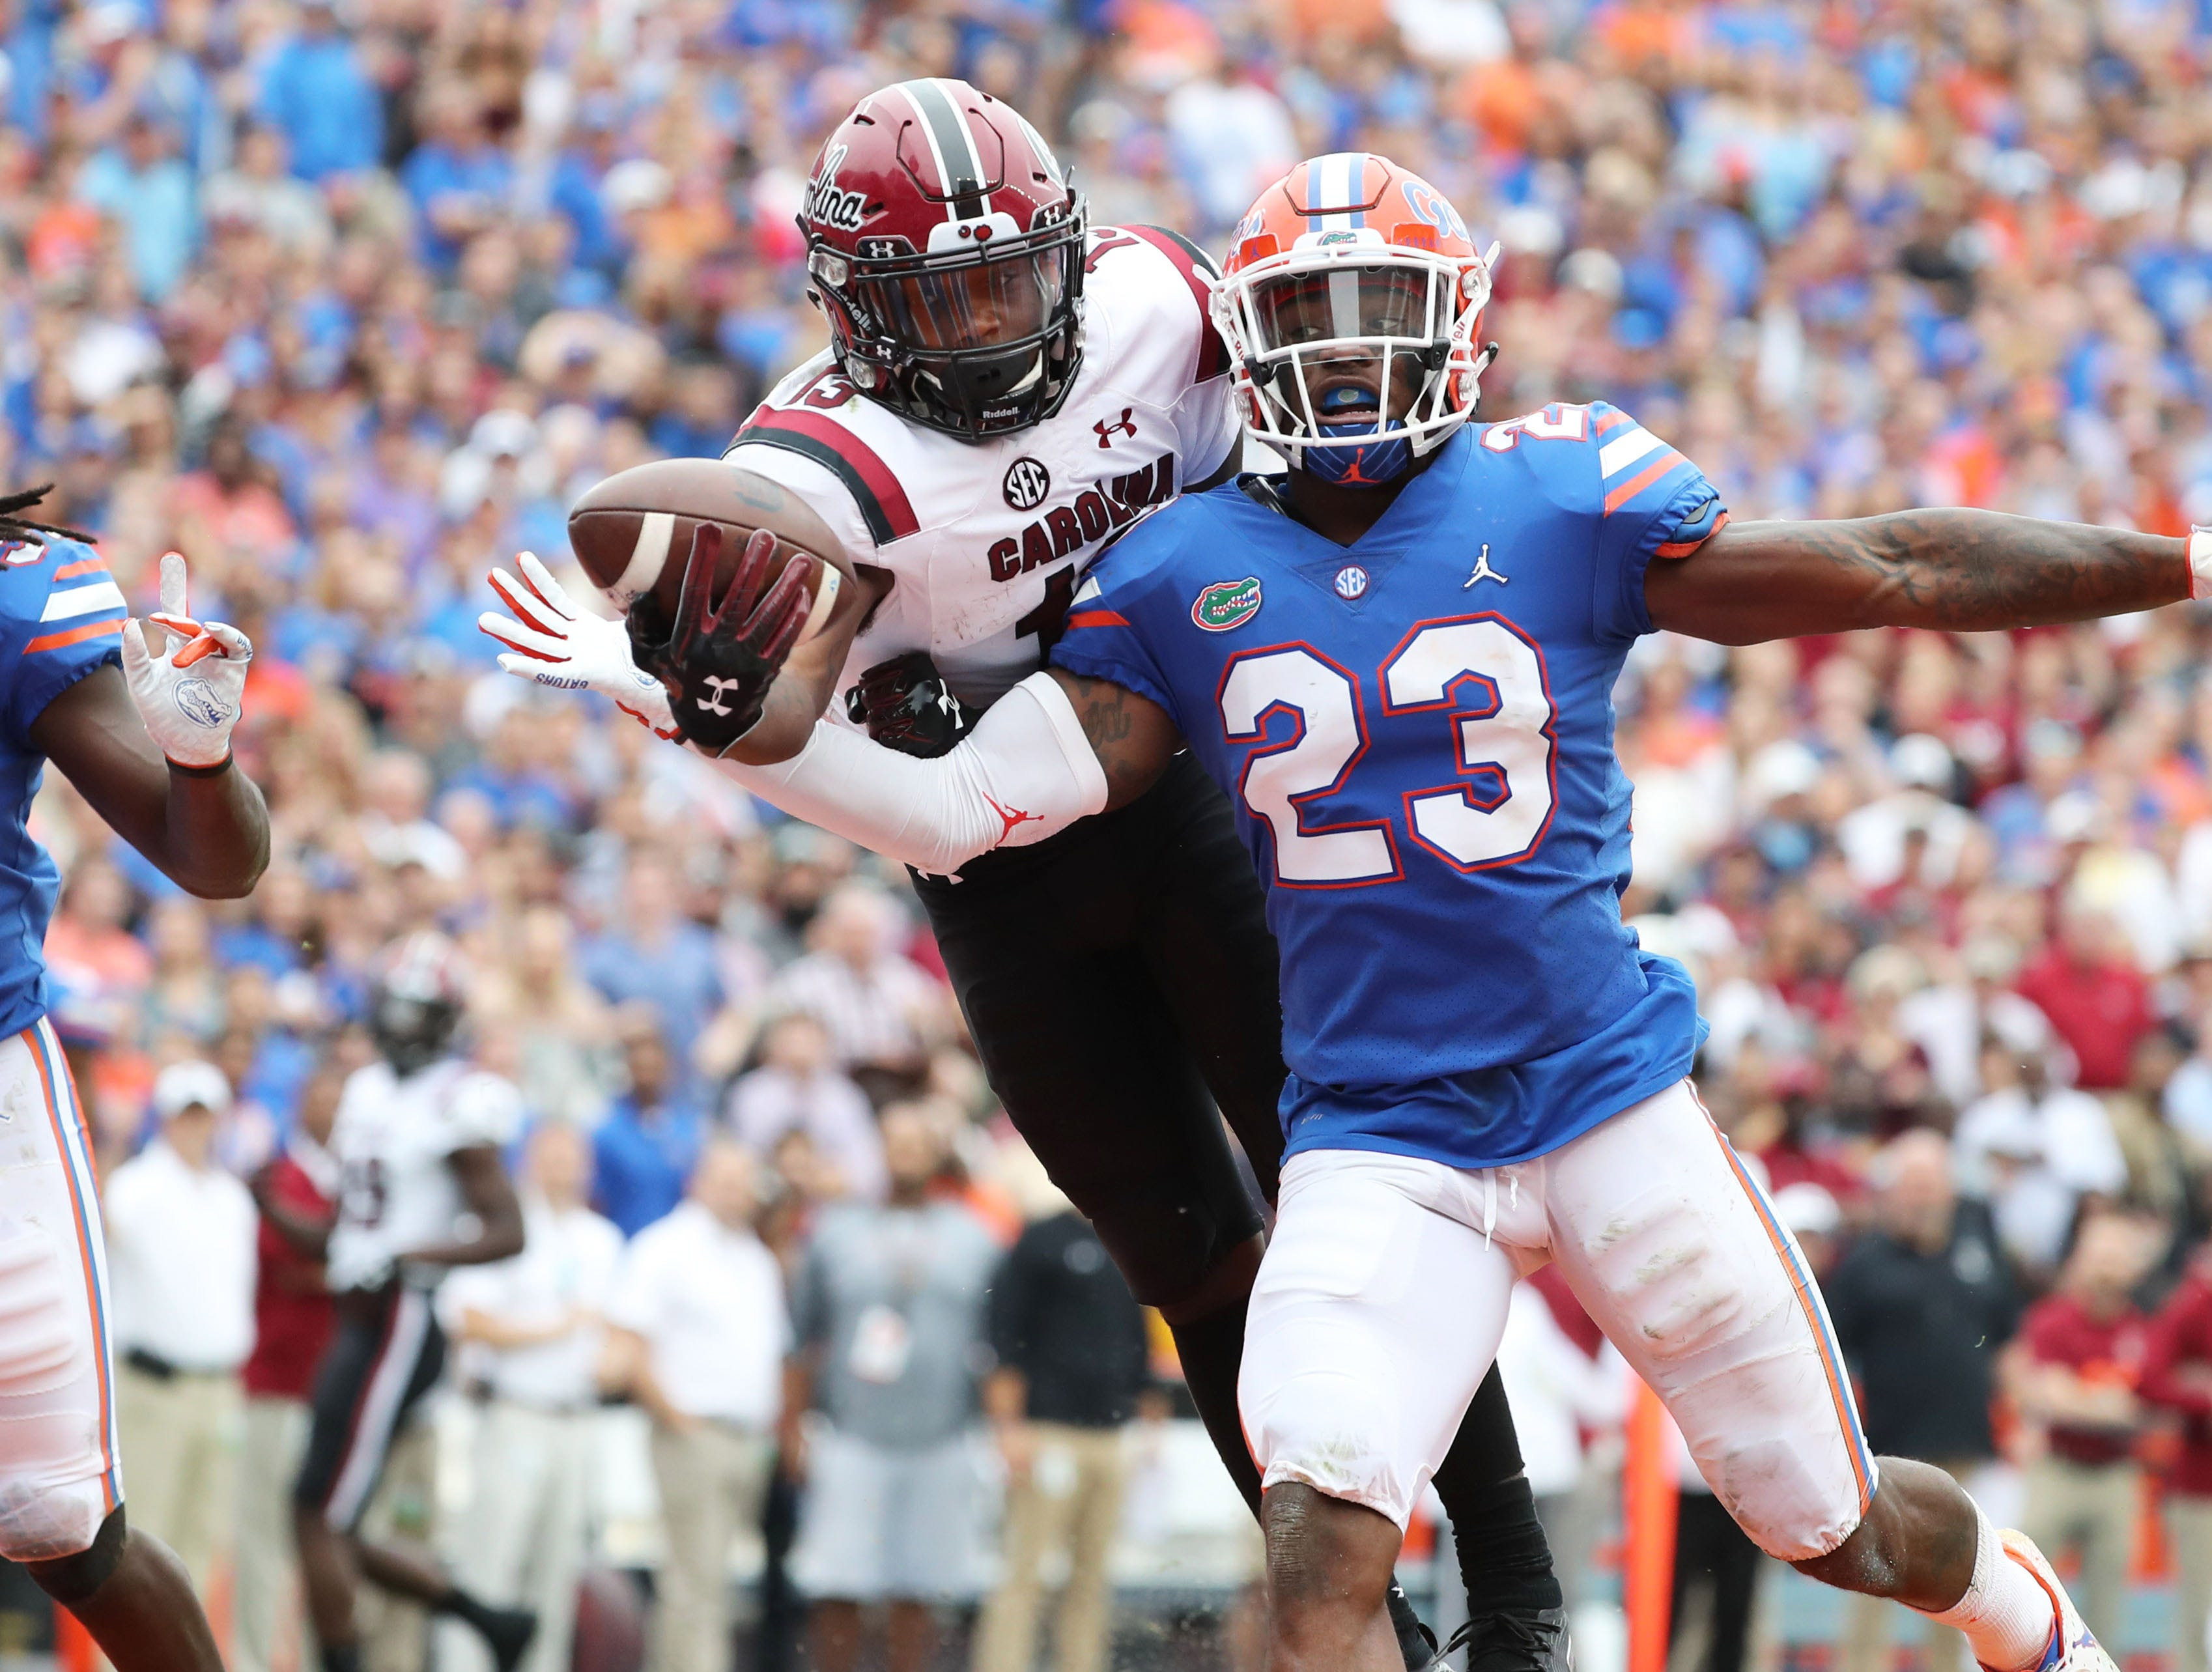 Florida Gators defensive back Chauncey Gardner-Johnson (23) breaks up a pass intended for South Carolina Gamecocks wide receiver Shi Smith (13) during the second quarter at Ben Hill Griffin Stadium.